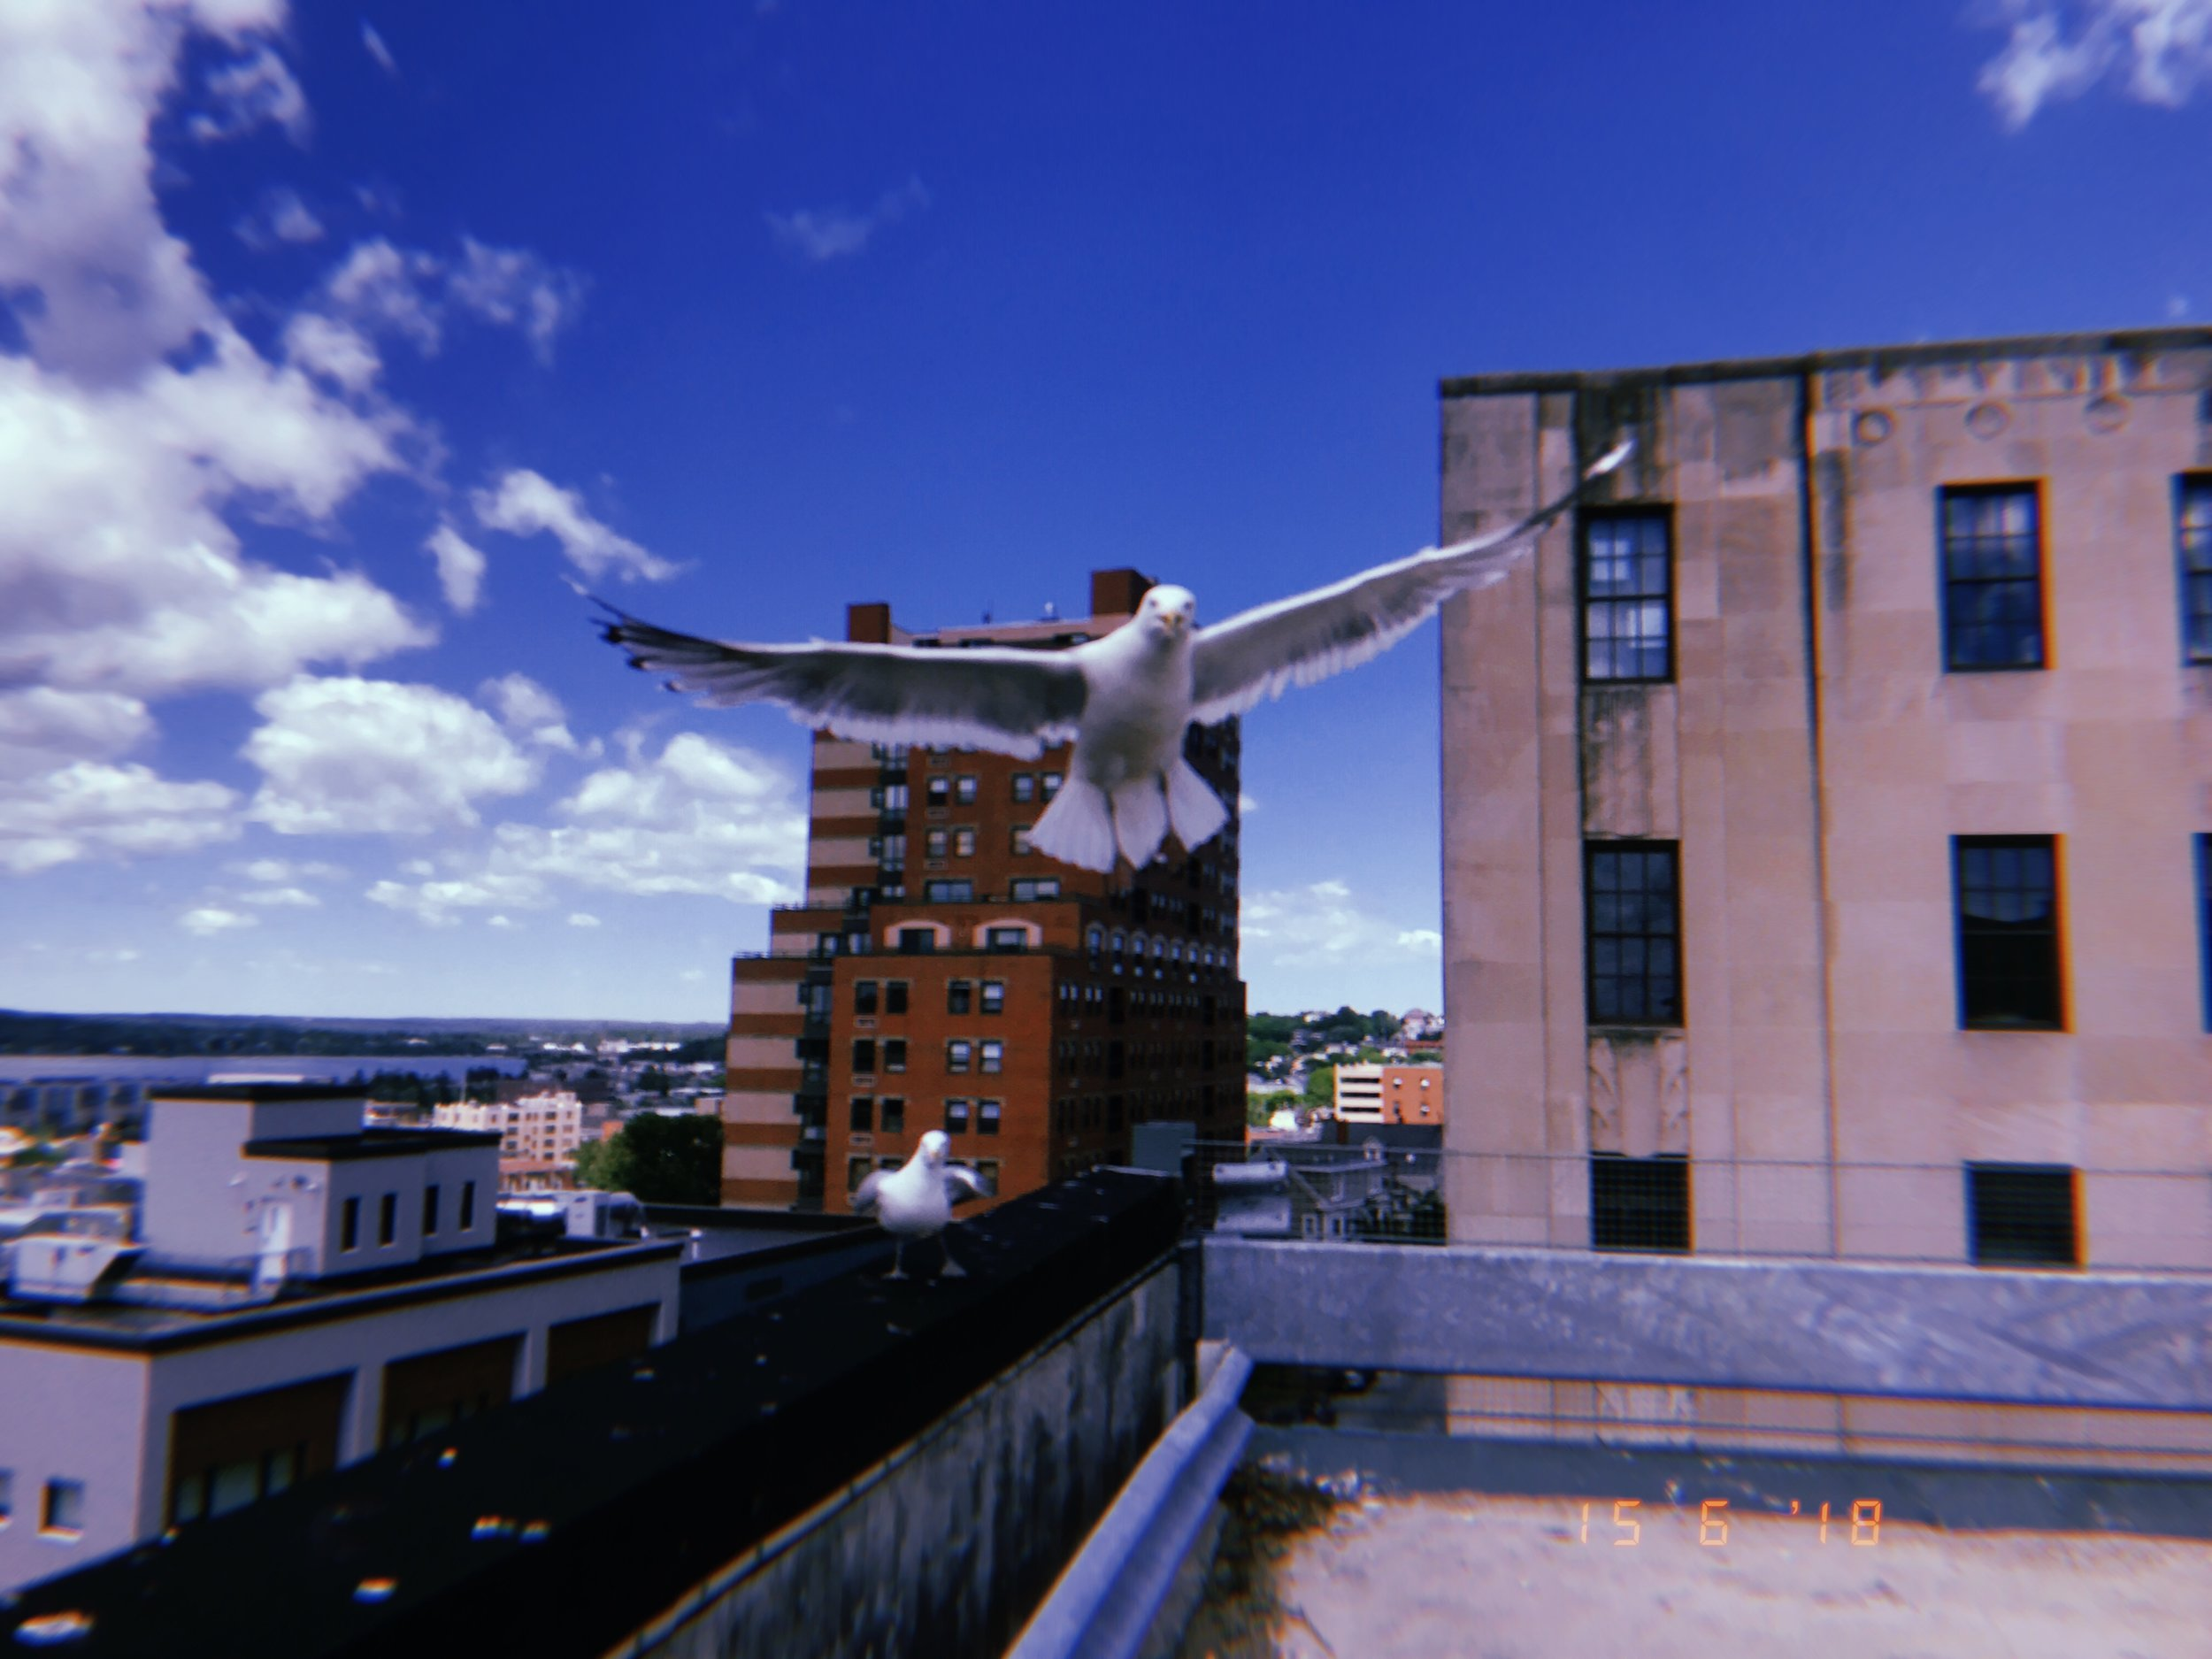 Whenever I visit a new town or city, I always look for a carpark or similarly tall structure so I can capture some decent aerial shots of wherever I am. In this particular carpark in Portland, Maine was some nesting seagulls who felt threatened enough to chase me the little bastards!